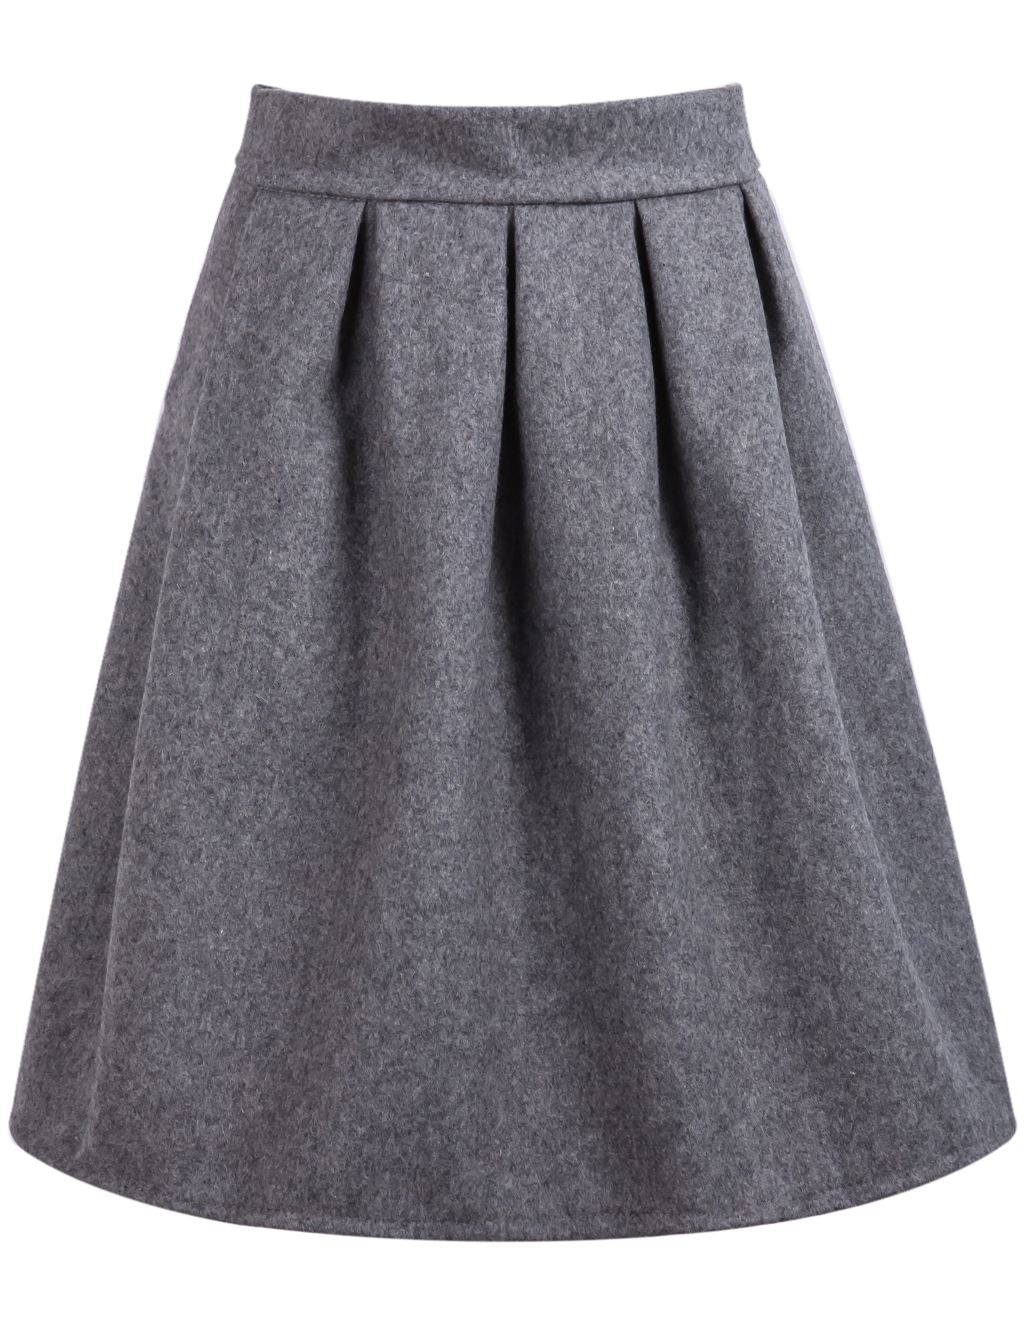 High Waist Wine Grey Skirtfor Women Romwe